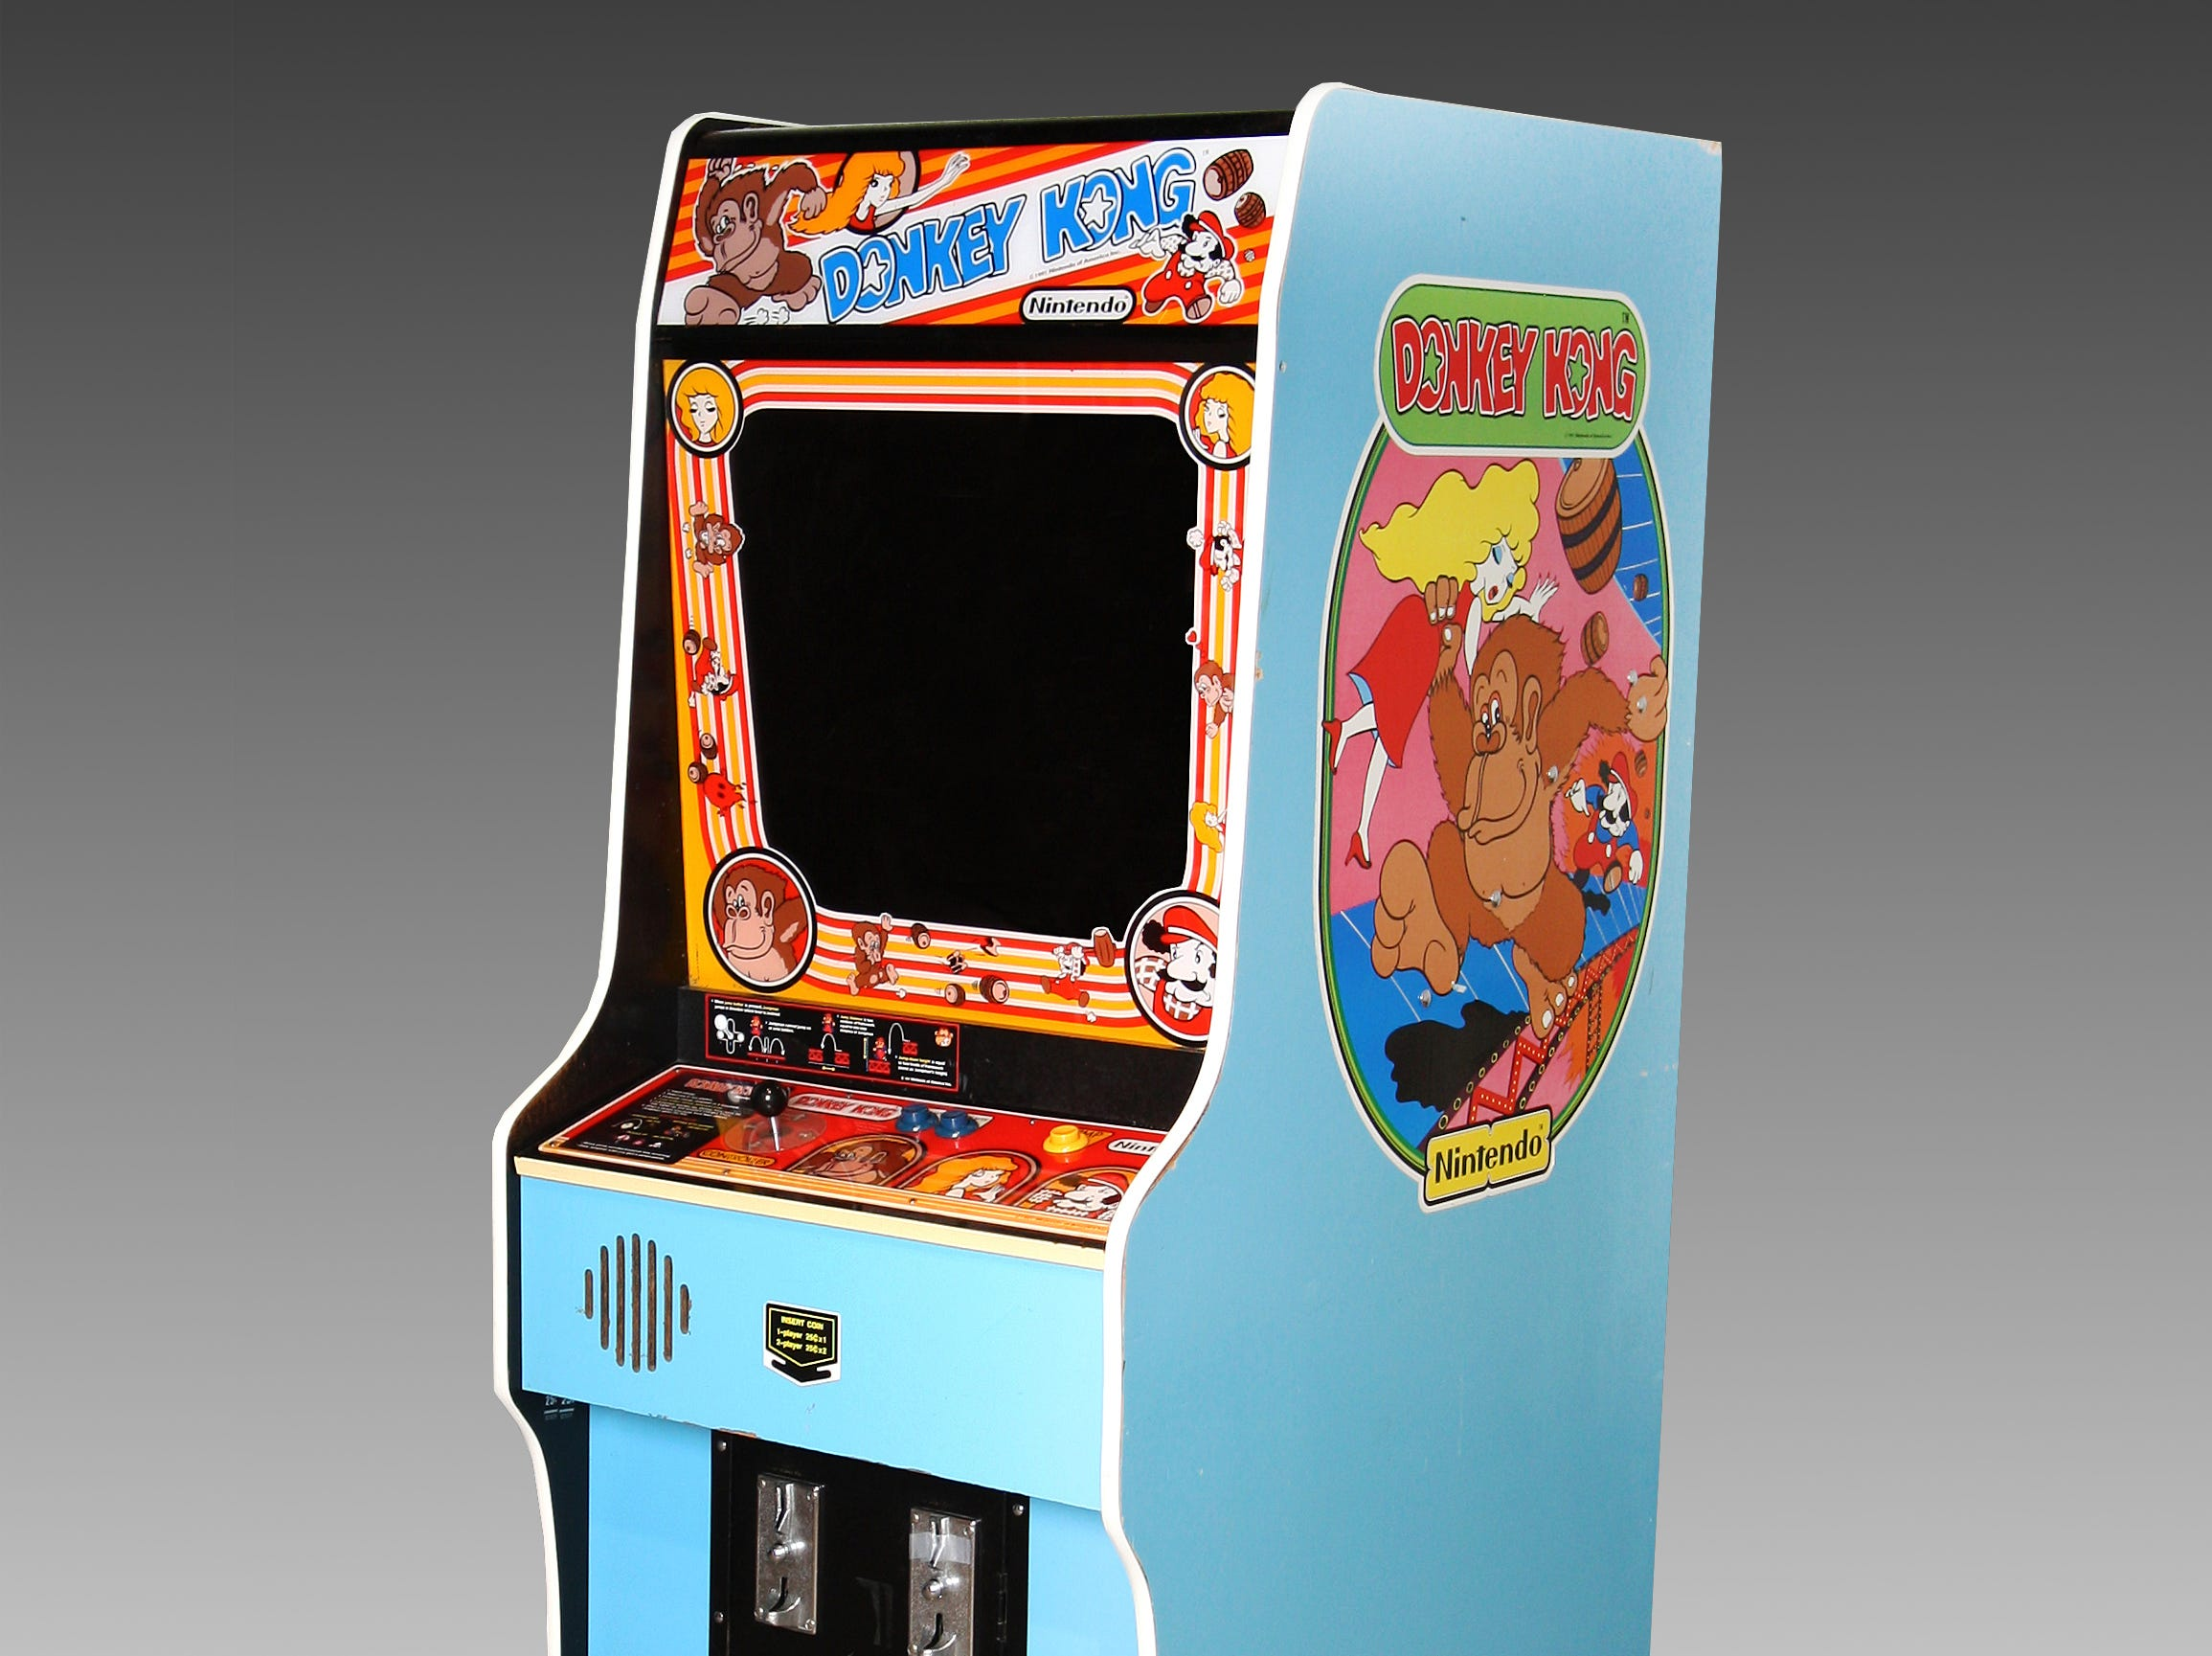 Donkey Kong was inducted into the World Video Game Hall of Fame at The Strong National Museum of Play in Rochester, New York in 2017.